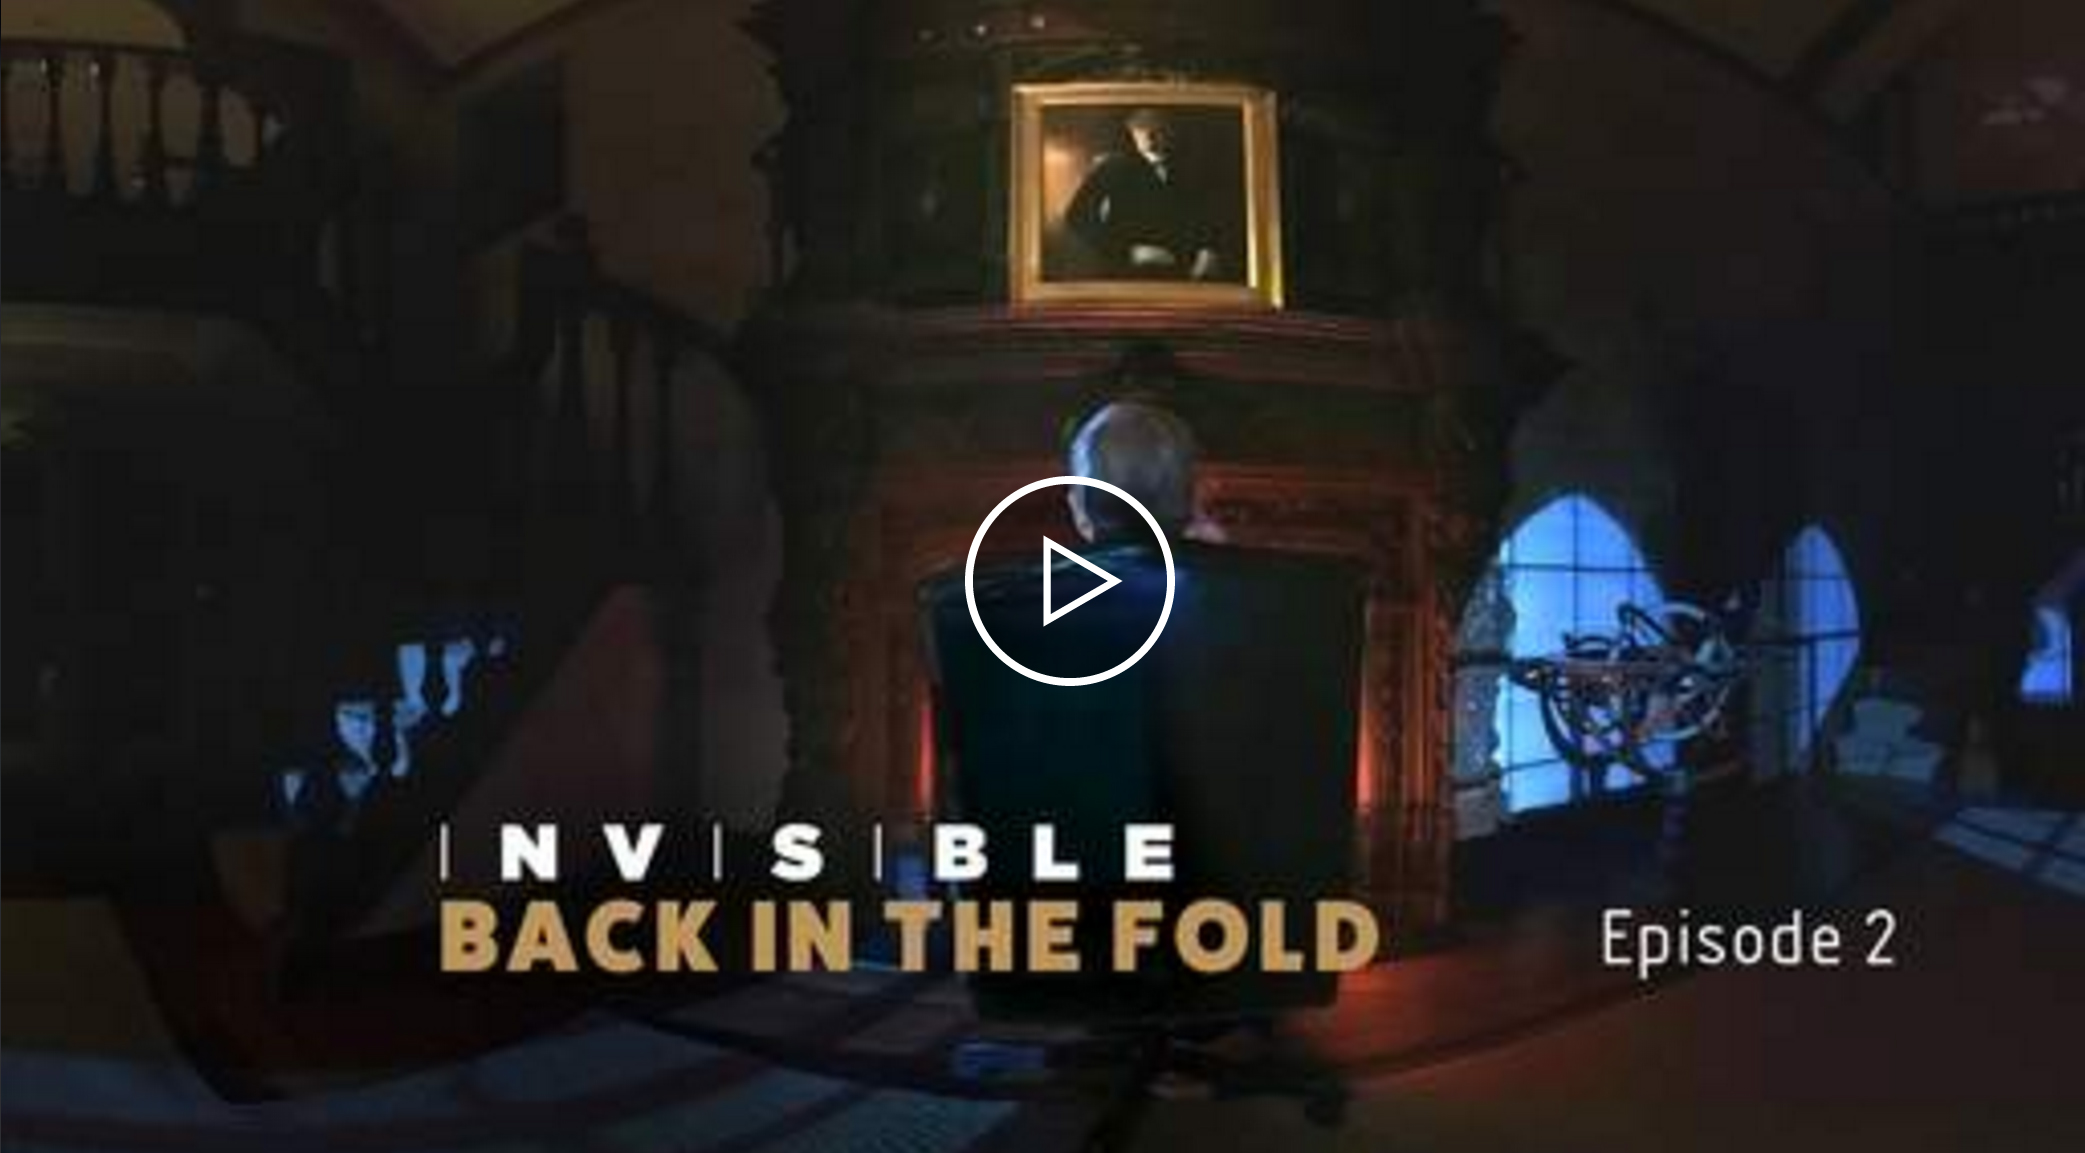 invisible-back-in-the-fold-episode-2